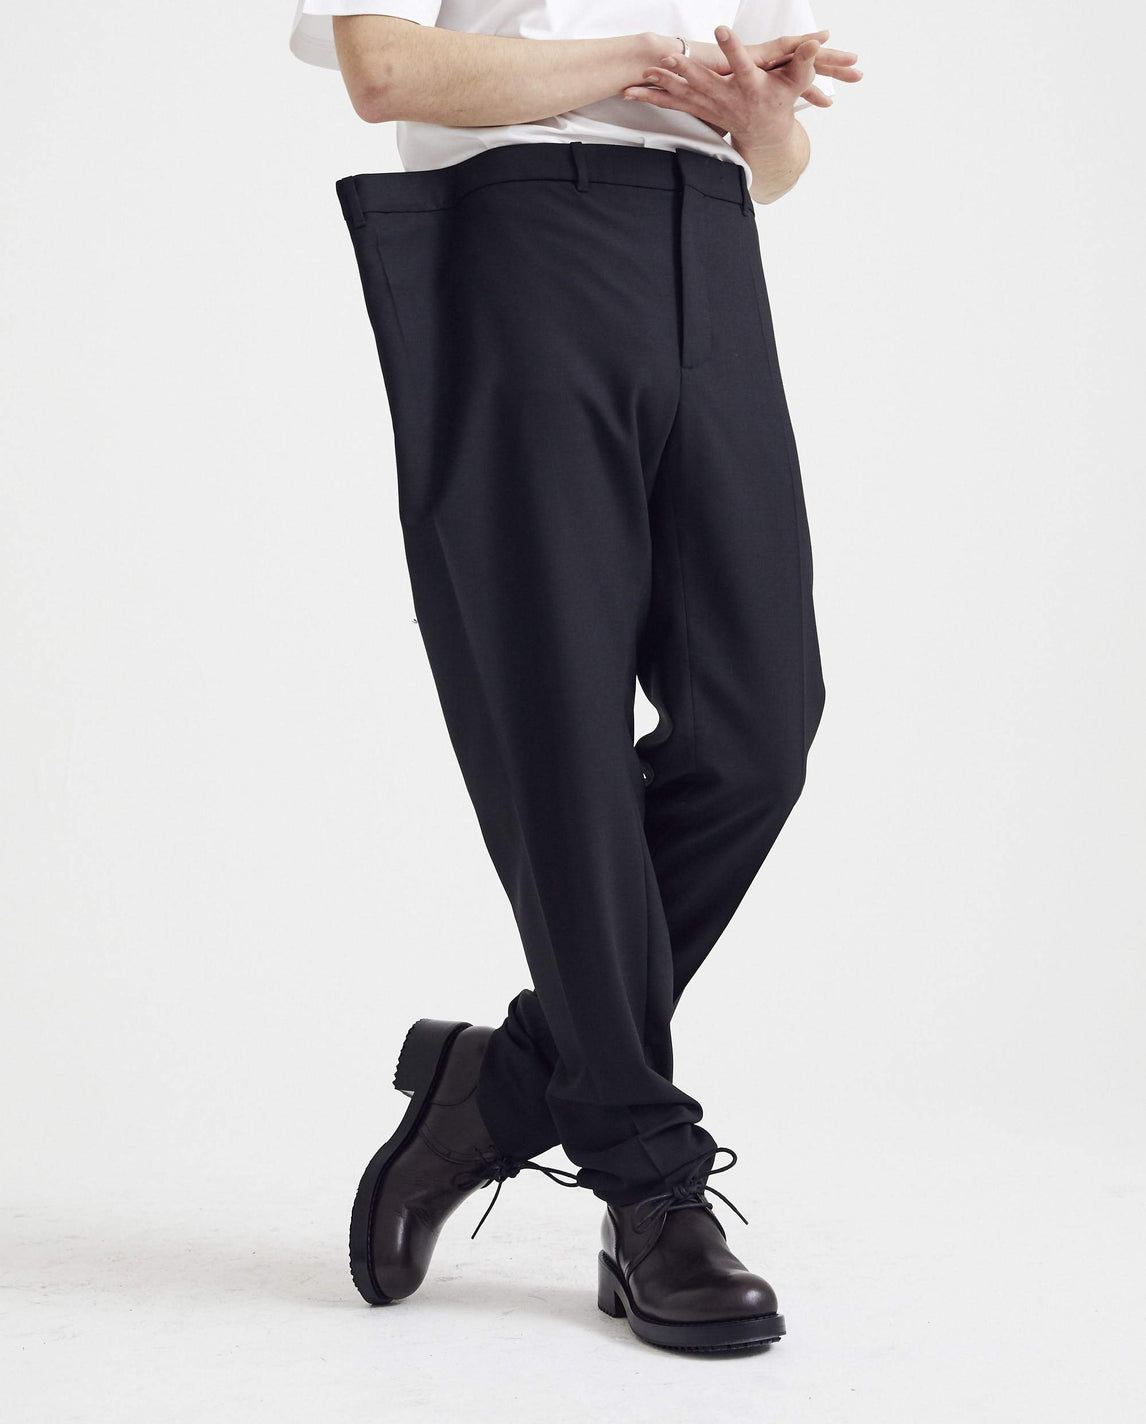 Oversized Waist Trousers - Black UNISEX Y / PROJECT